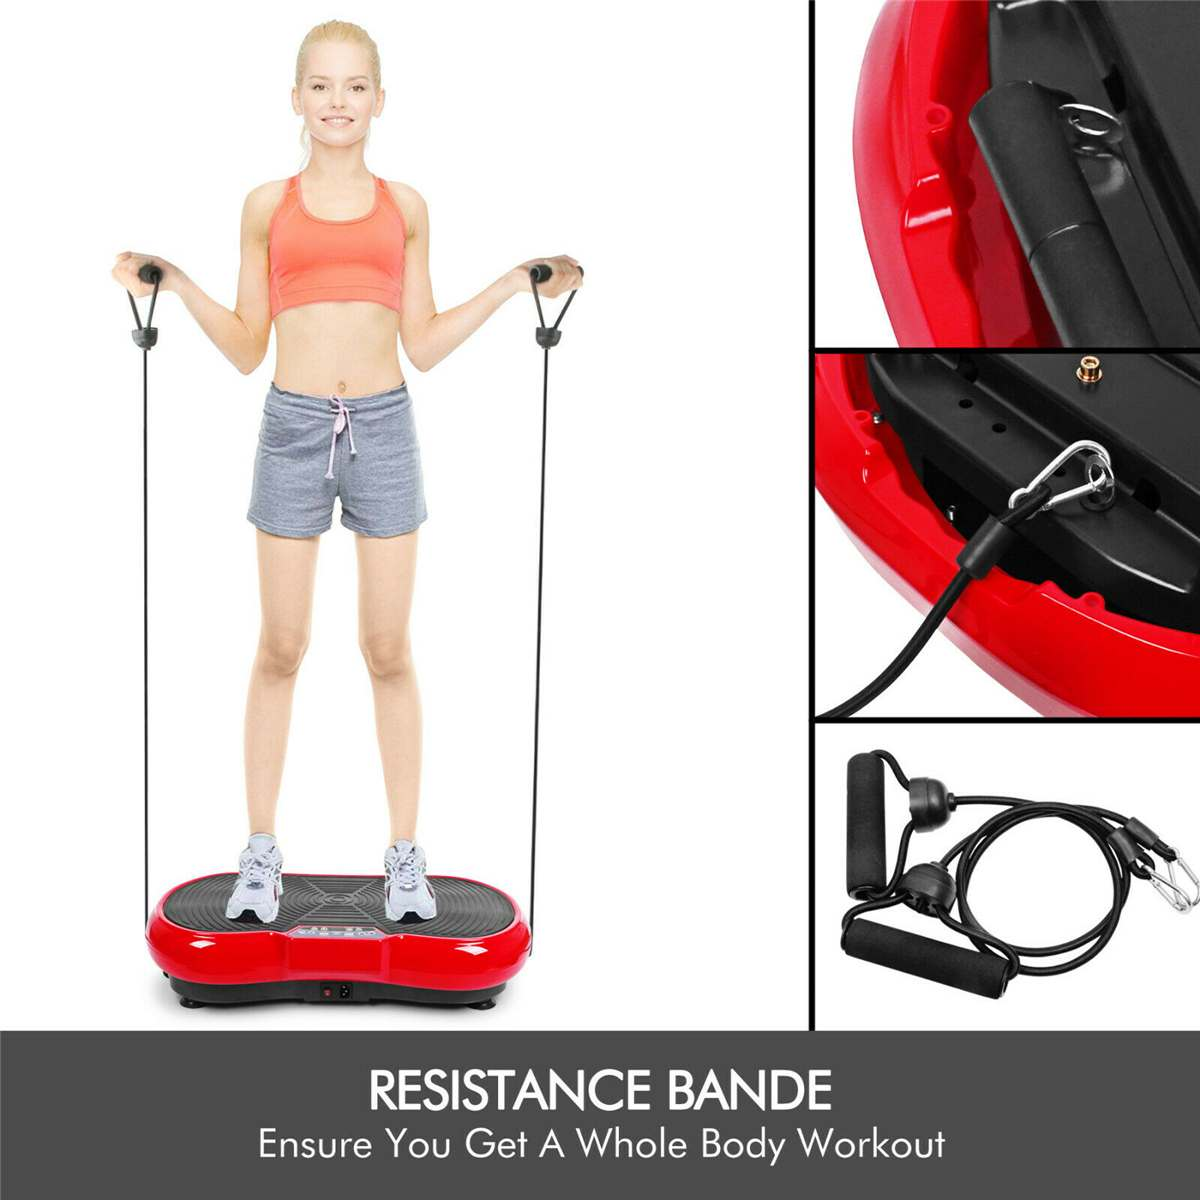 250KG Exercise Fitness Slim Vibration Machine Include Remote Watch bluetooth~Trainer Plate Platform Body Shaper +Resistance Band Pakistan